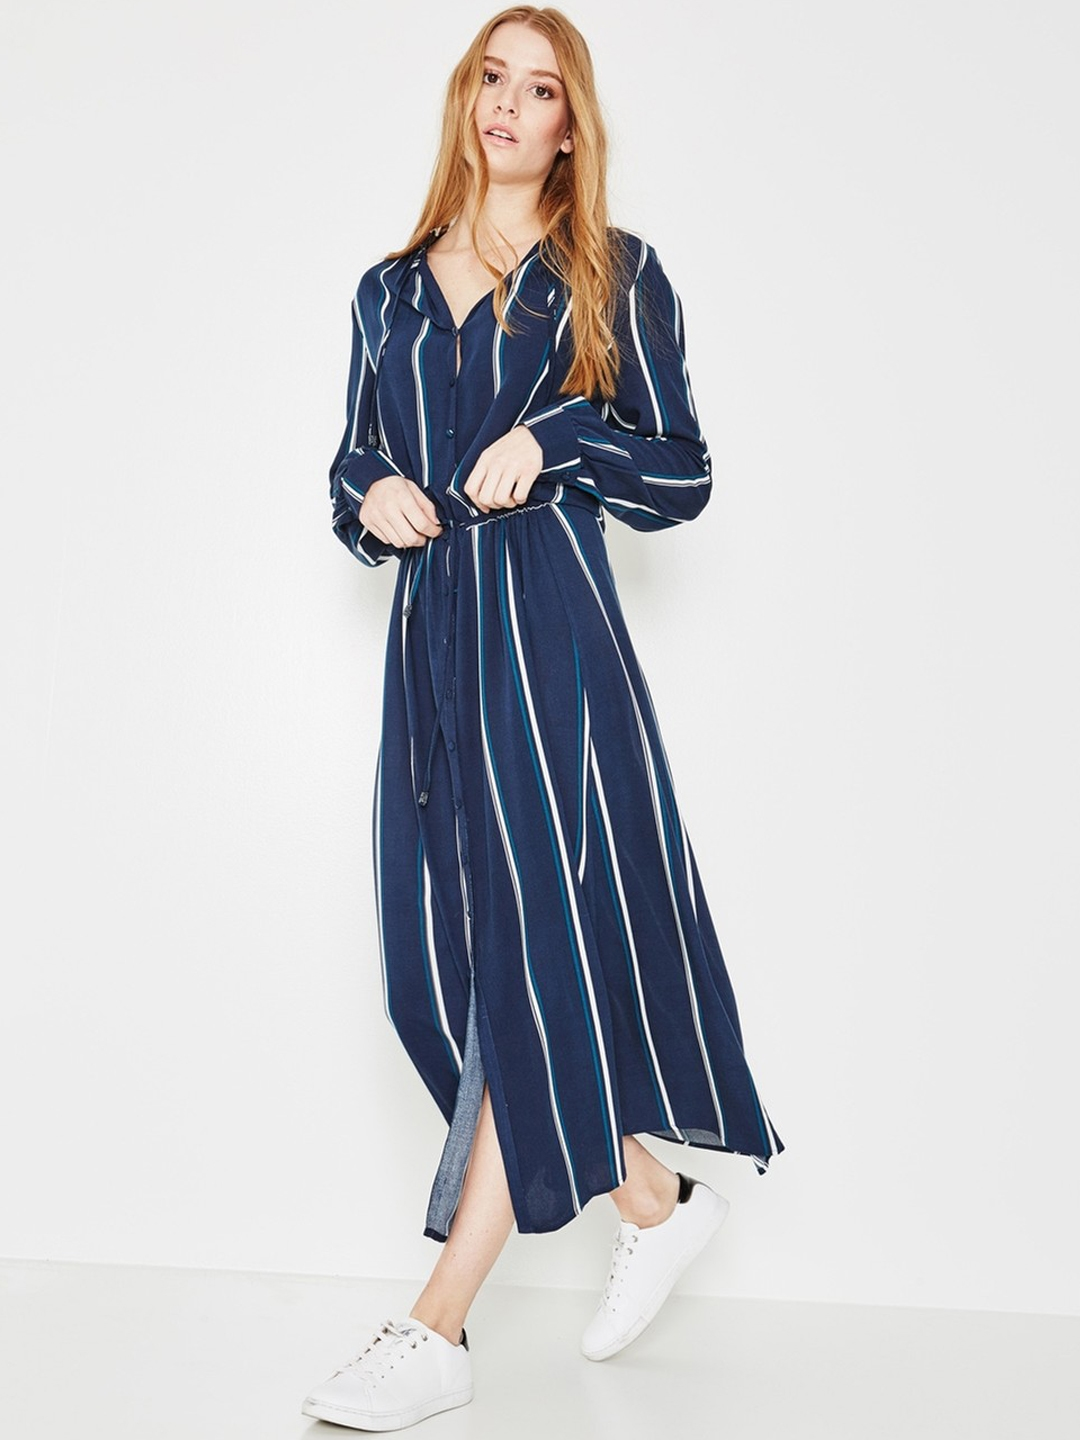 Buy Promod Women Navy Blue   White Striped Maxi Dress - Dresses for ... 85ae7a274